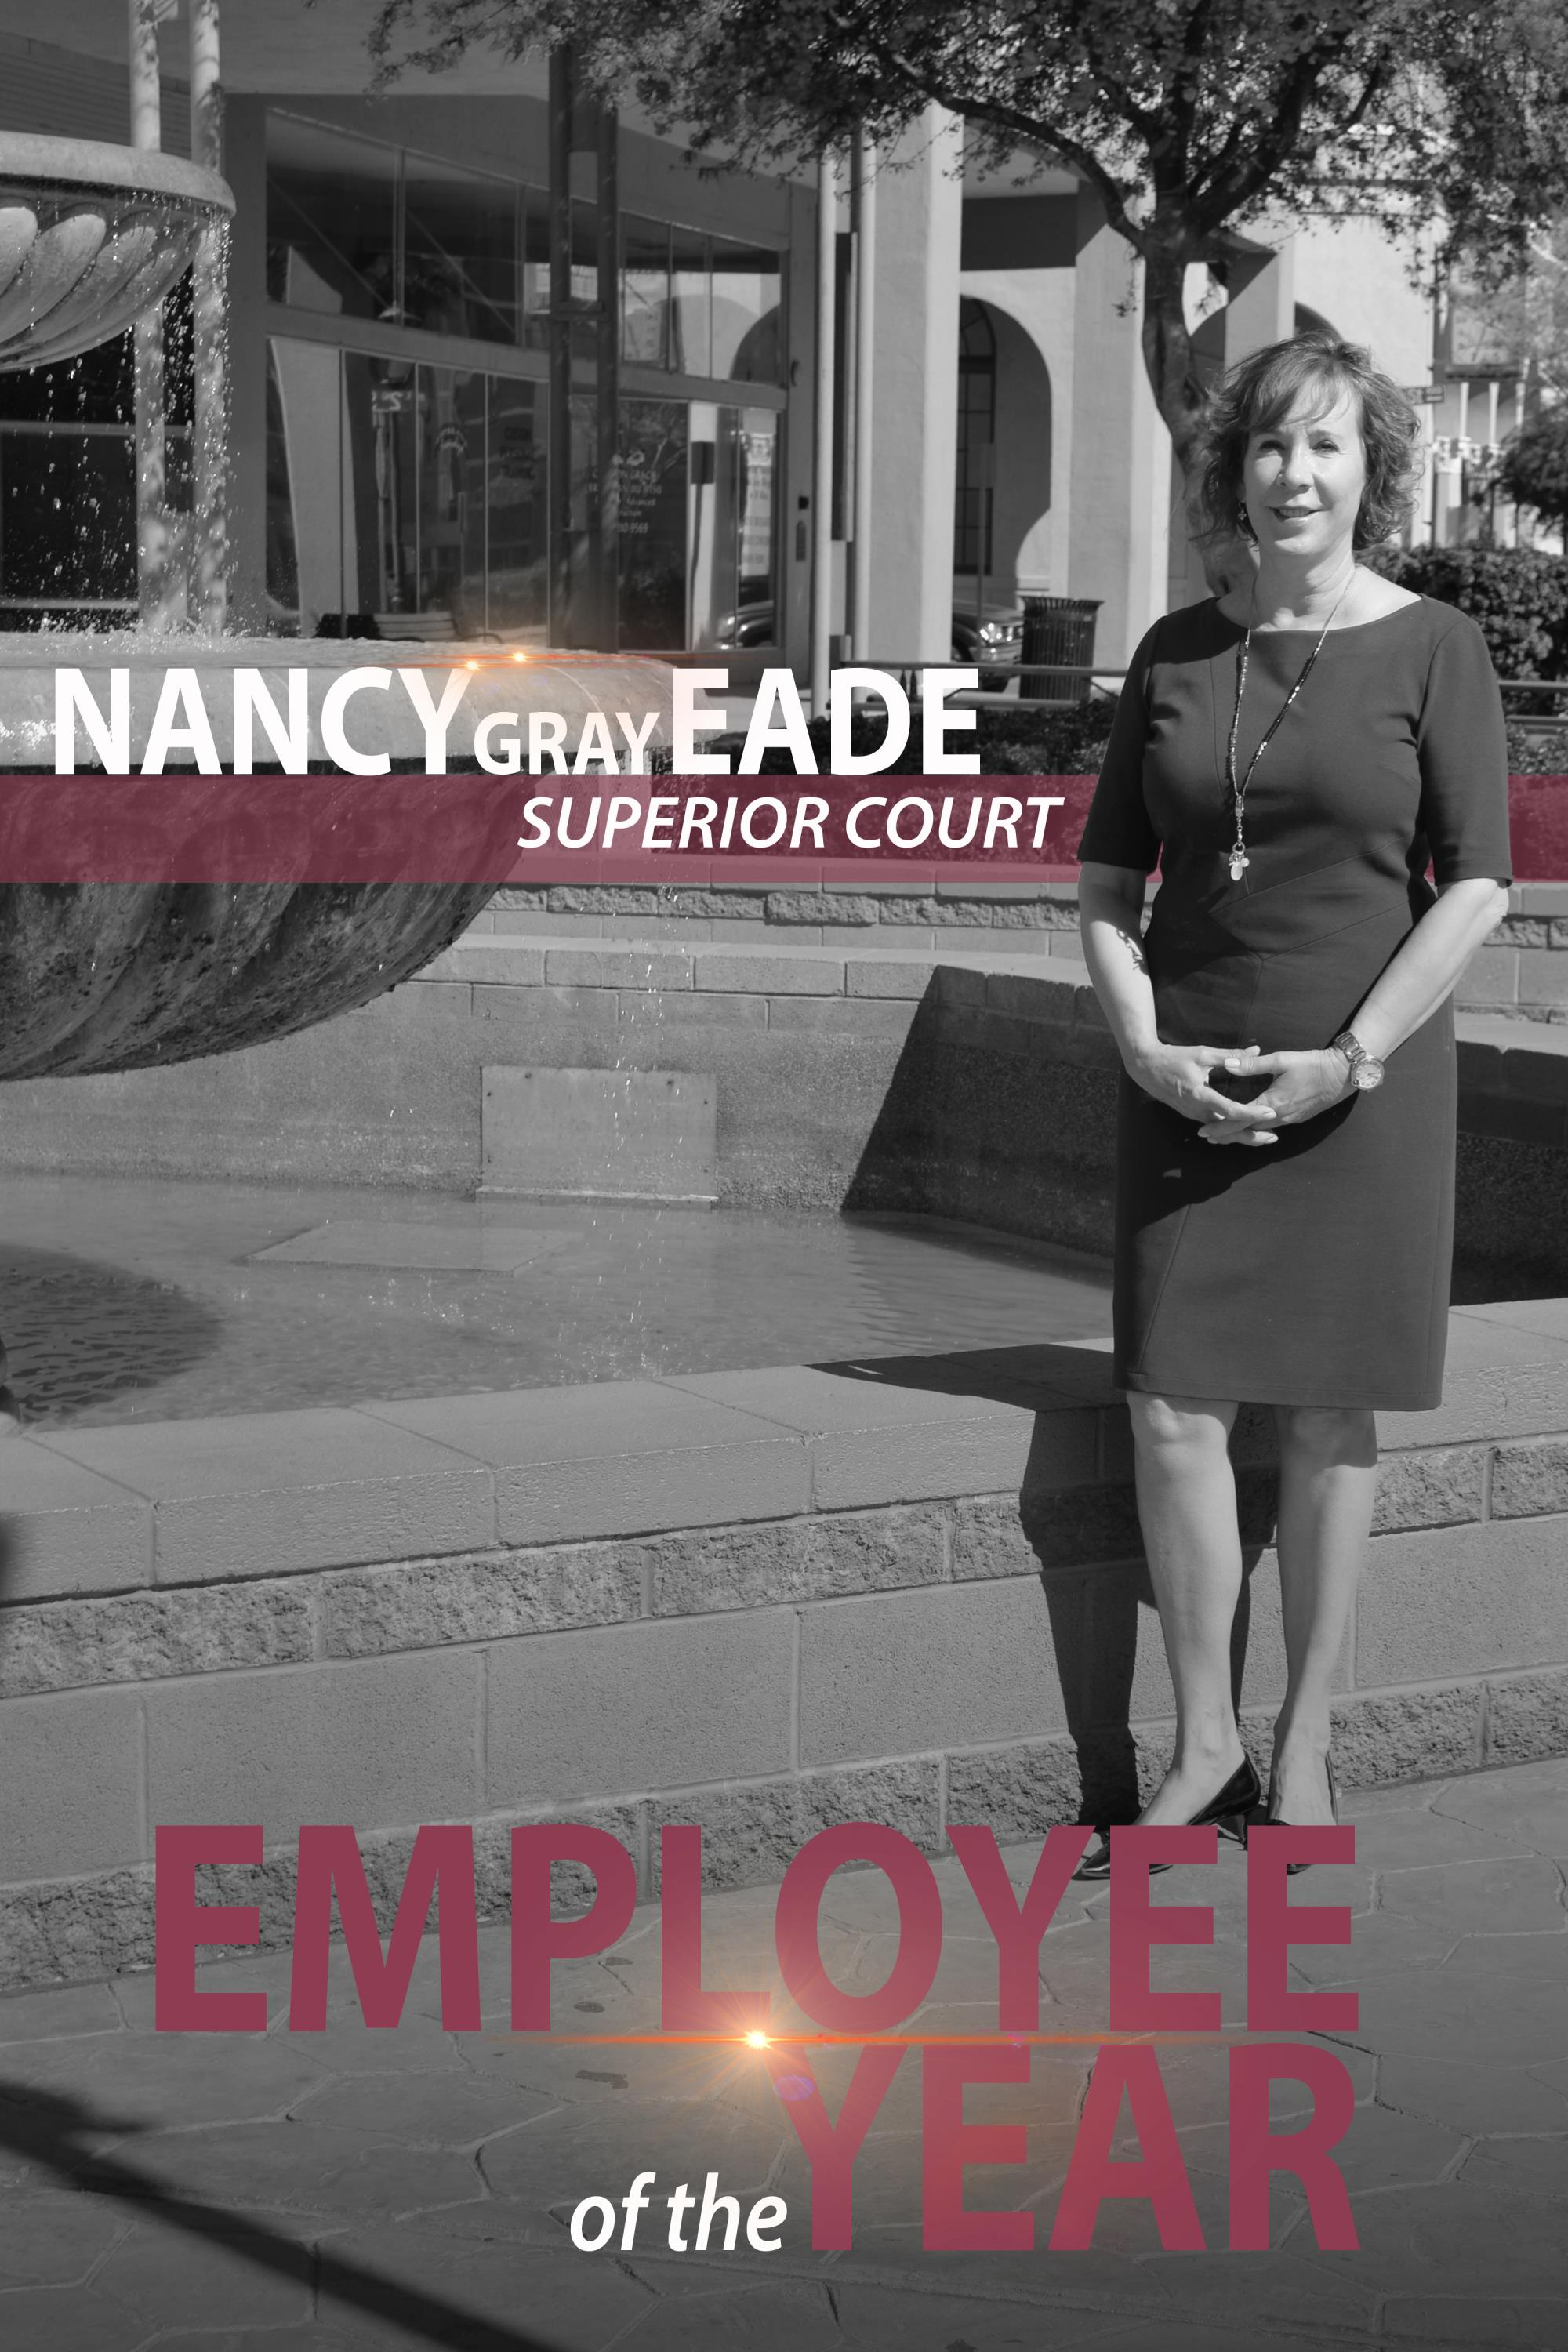 Nancy Gray Eade